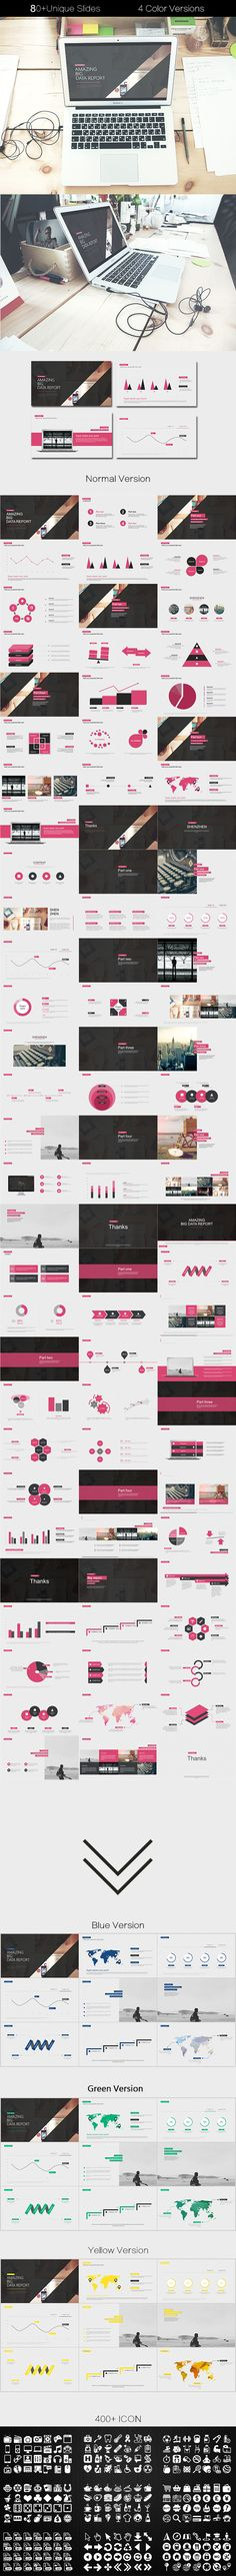 MIDD-PowerPonit  (PowerPoint Templates)